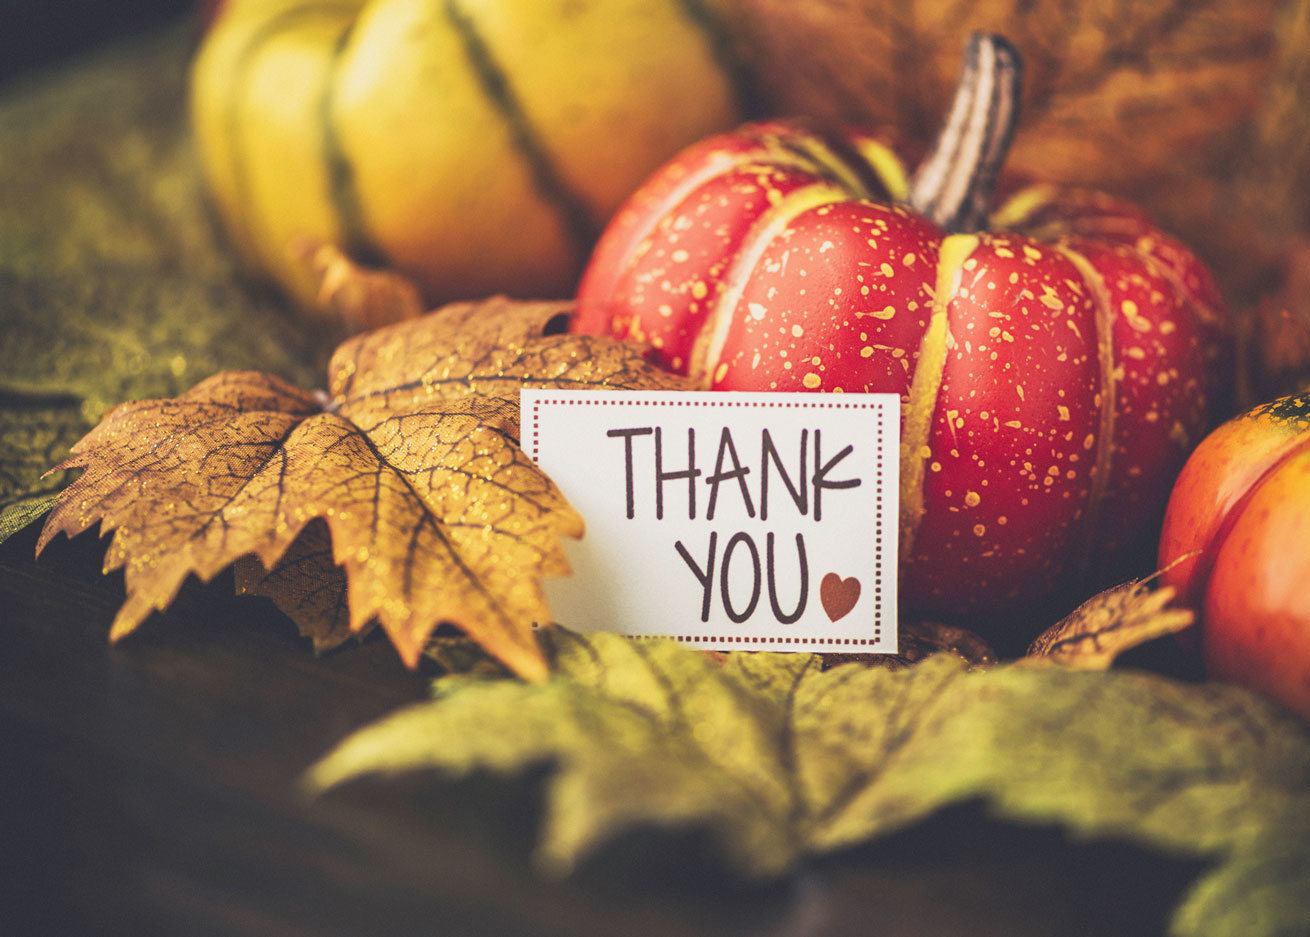 Autumn-Thanksgiving-arrangement-with-thank-you-message-000076289397_Medium.jpg